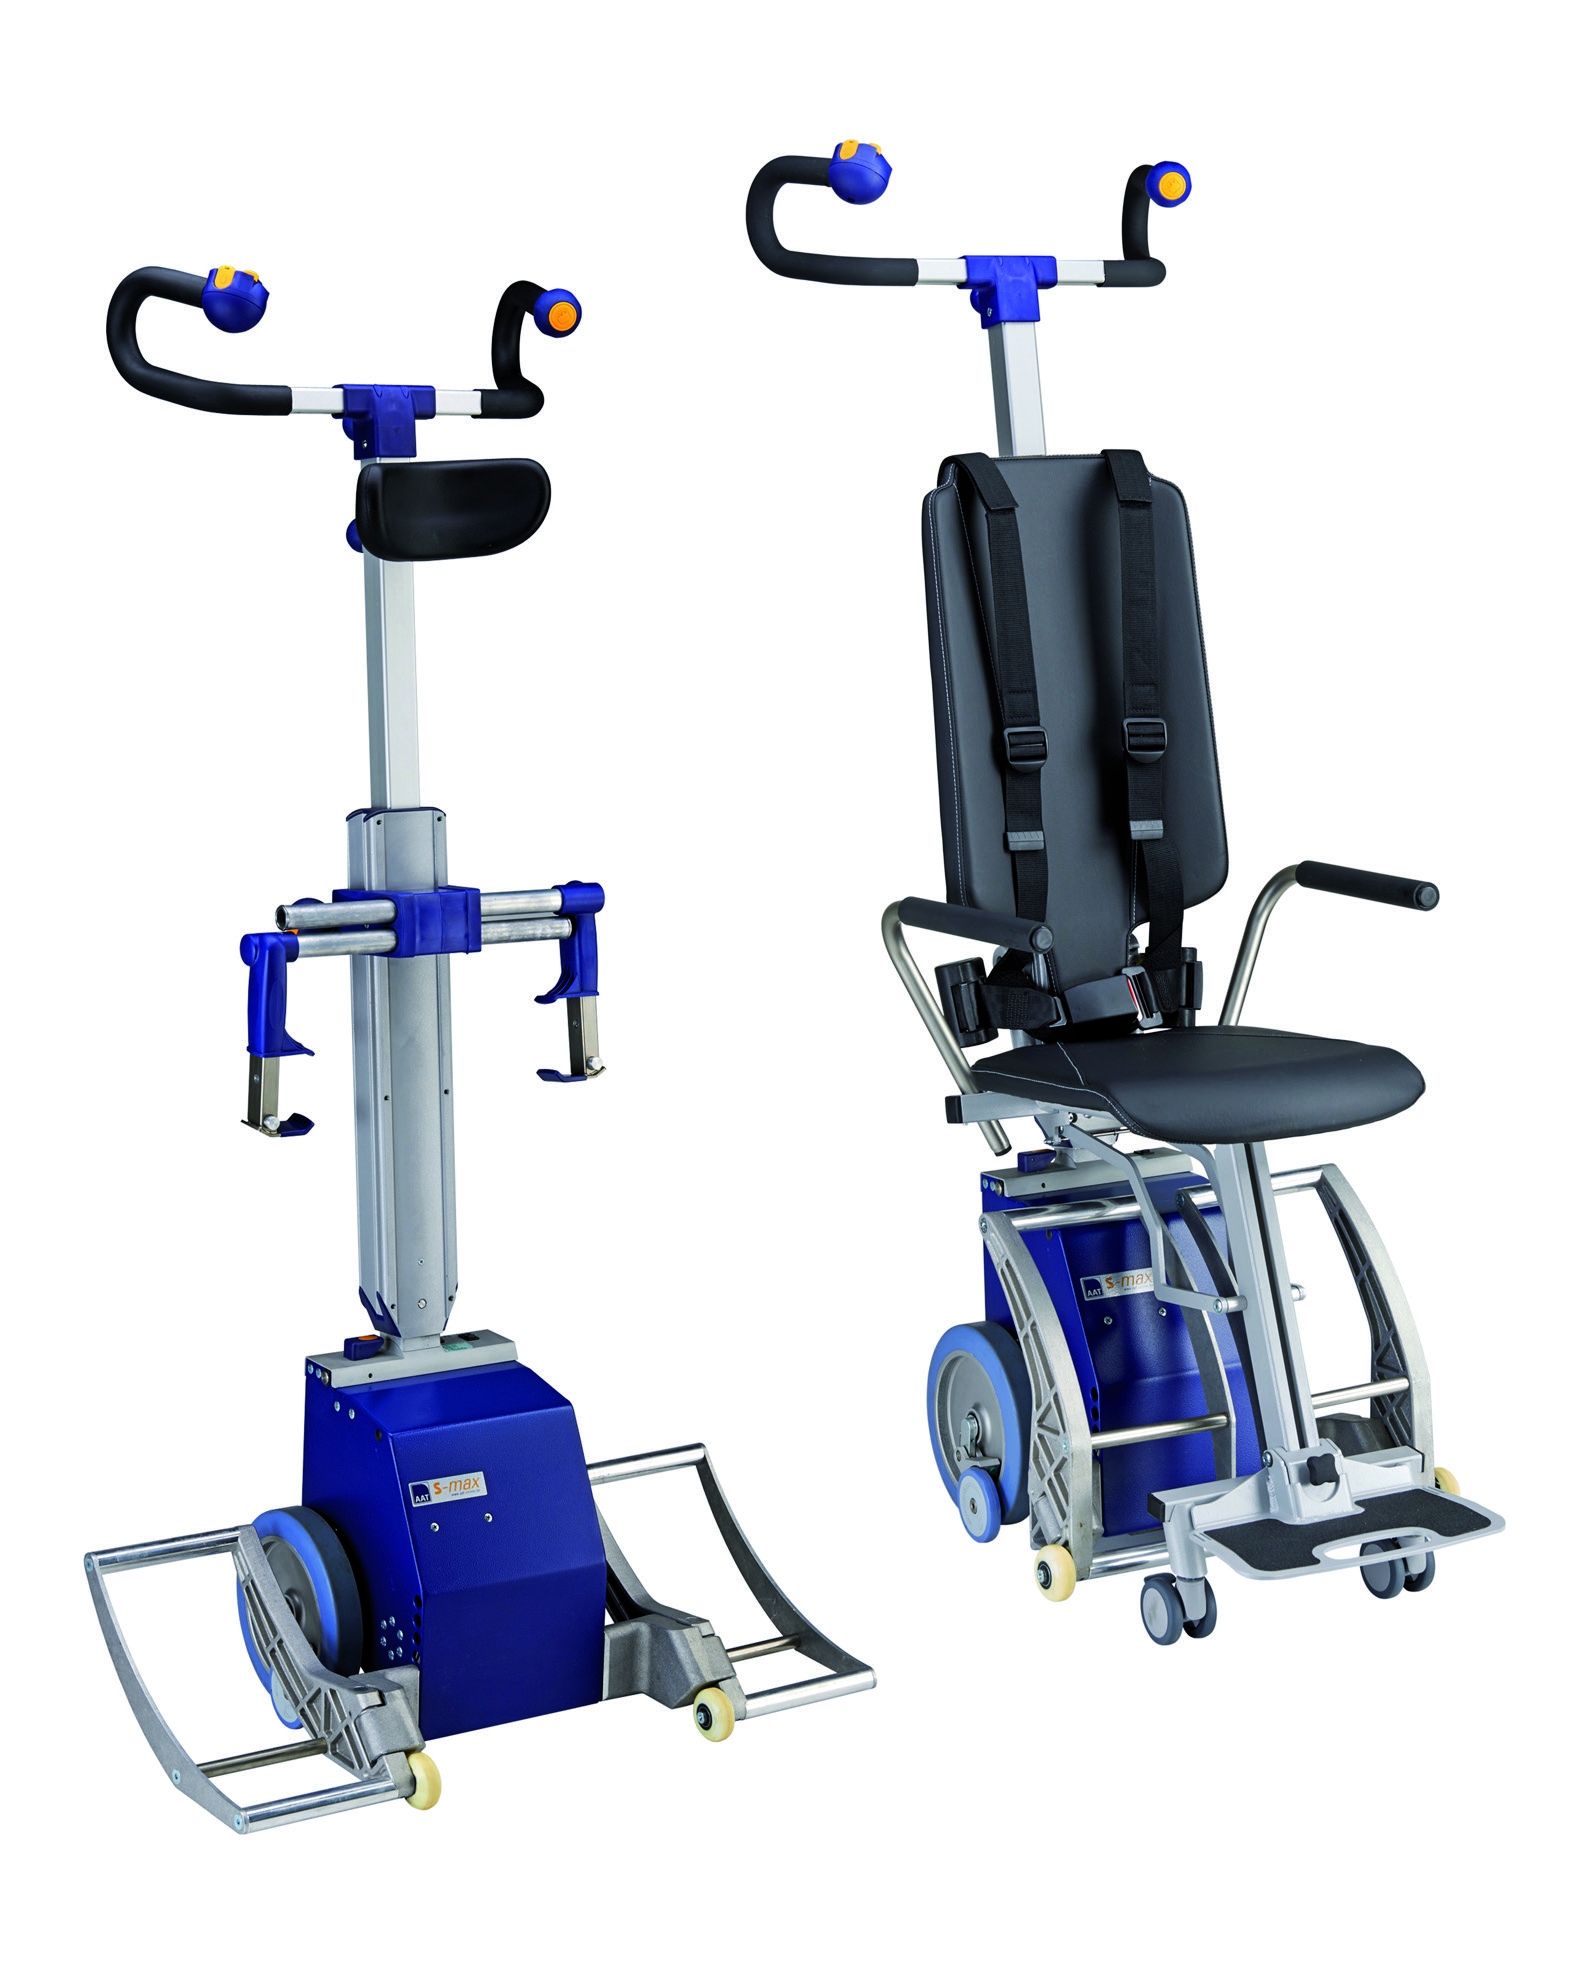 S Max Sella Vario stairclimber with and without seating system